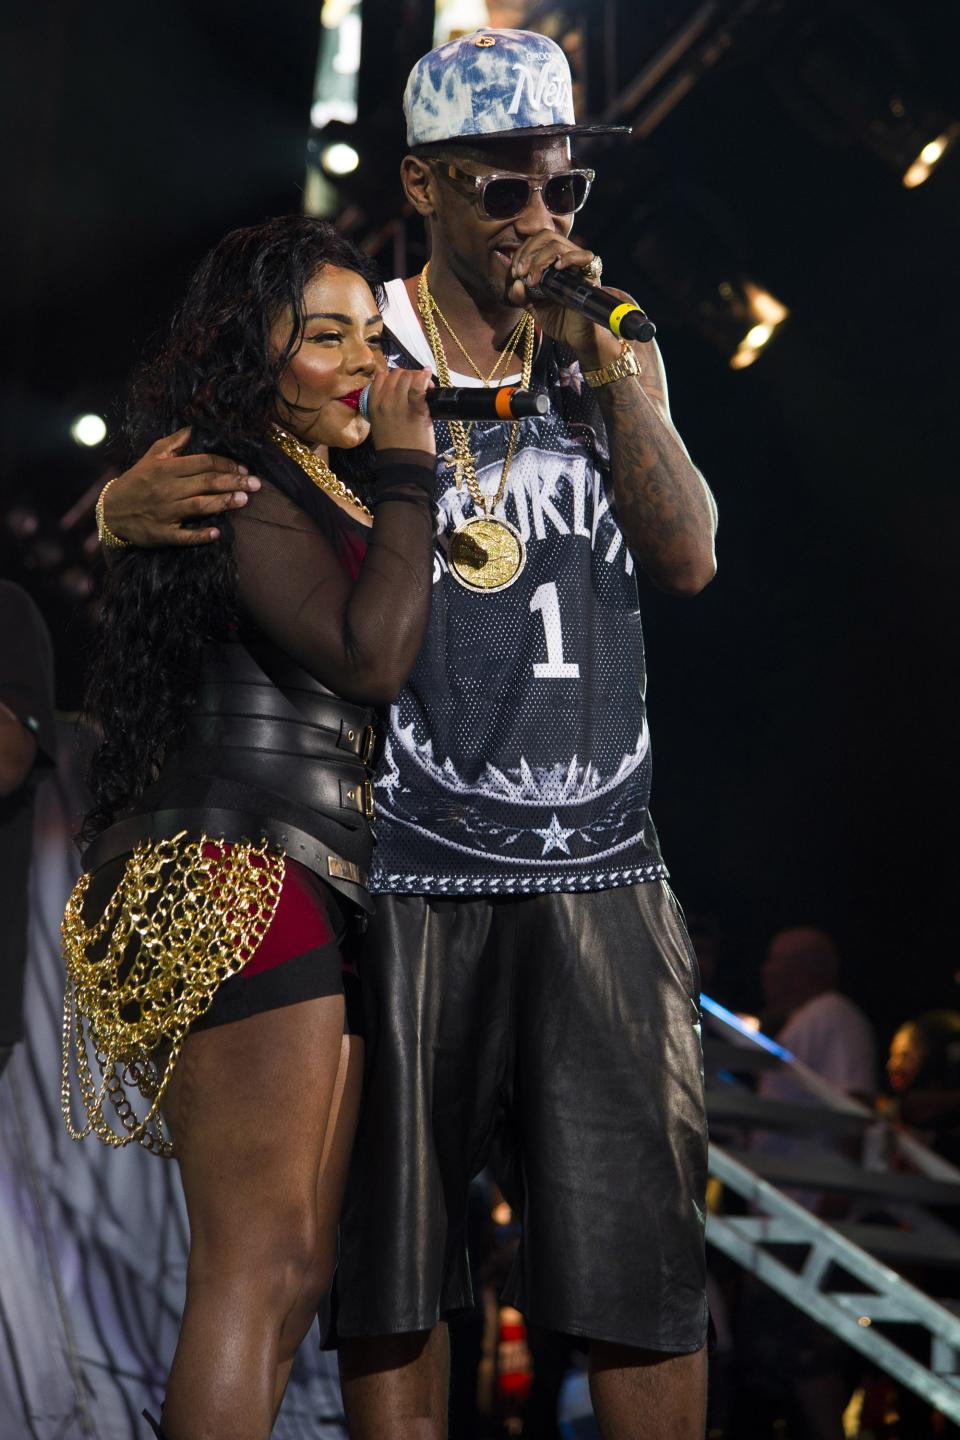 Lil' Kim and Fabolous perform at the Hot 97 Summer Jam XX on Sunday, June 2, 2013 in East Rutherford, N.J. (Photo by Charles Sykes/Invision/AP)